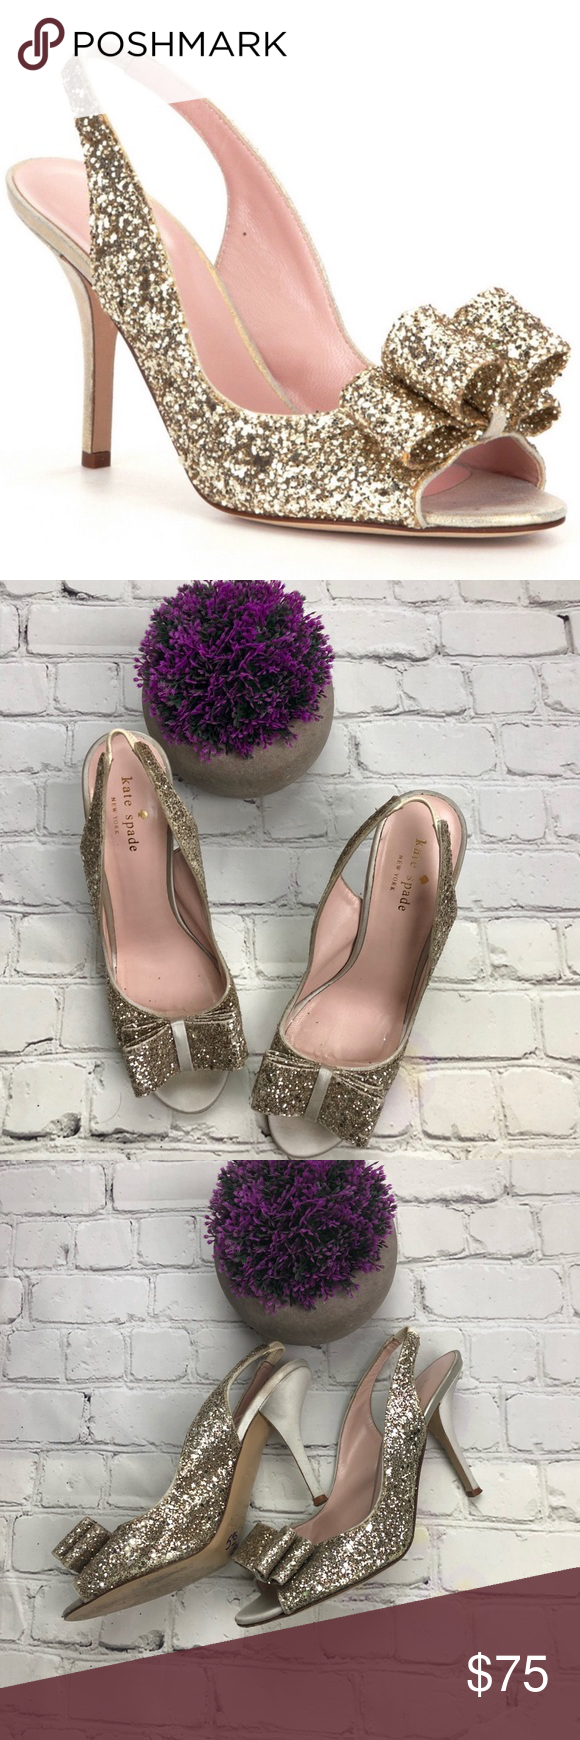 2 inches shimmery suede heel, padded leather lining    Slight signs of wear as depicted in photos    Th is part of Fashion -